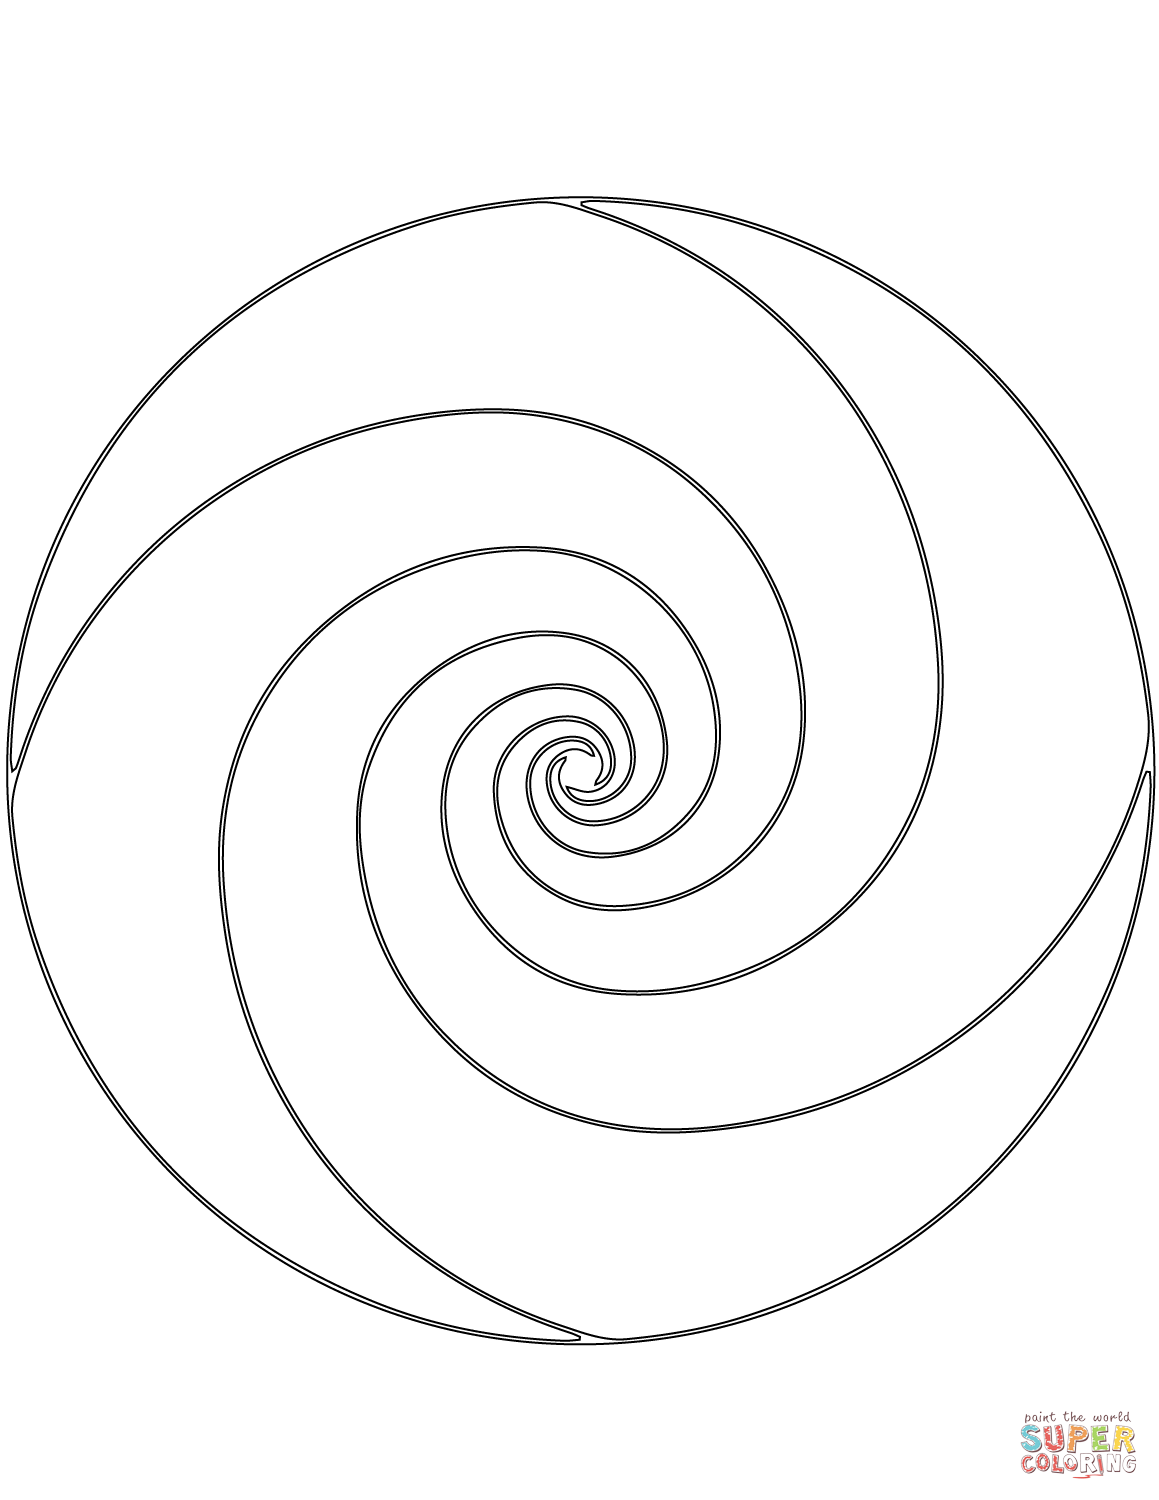 Spiral coloring, Download Spiral coloring for free 2019